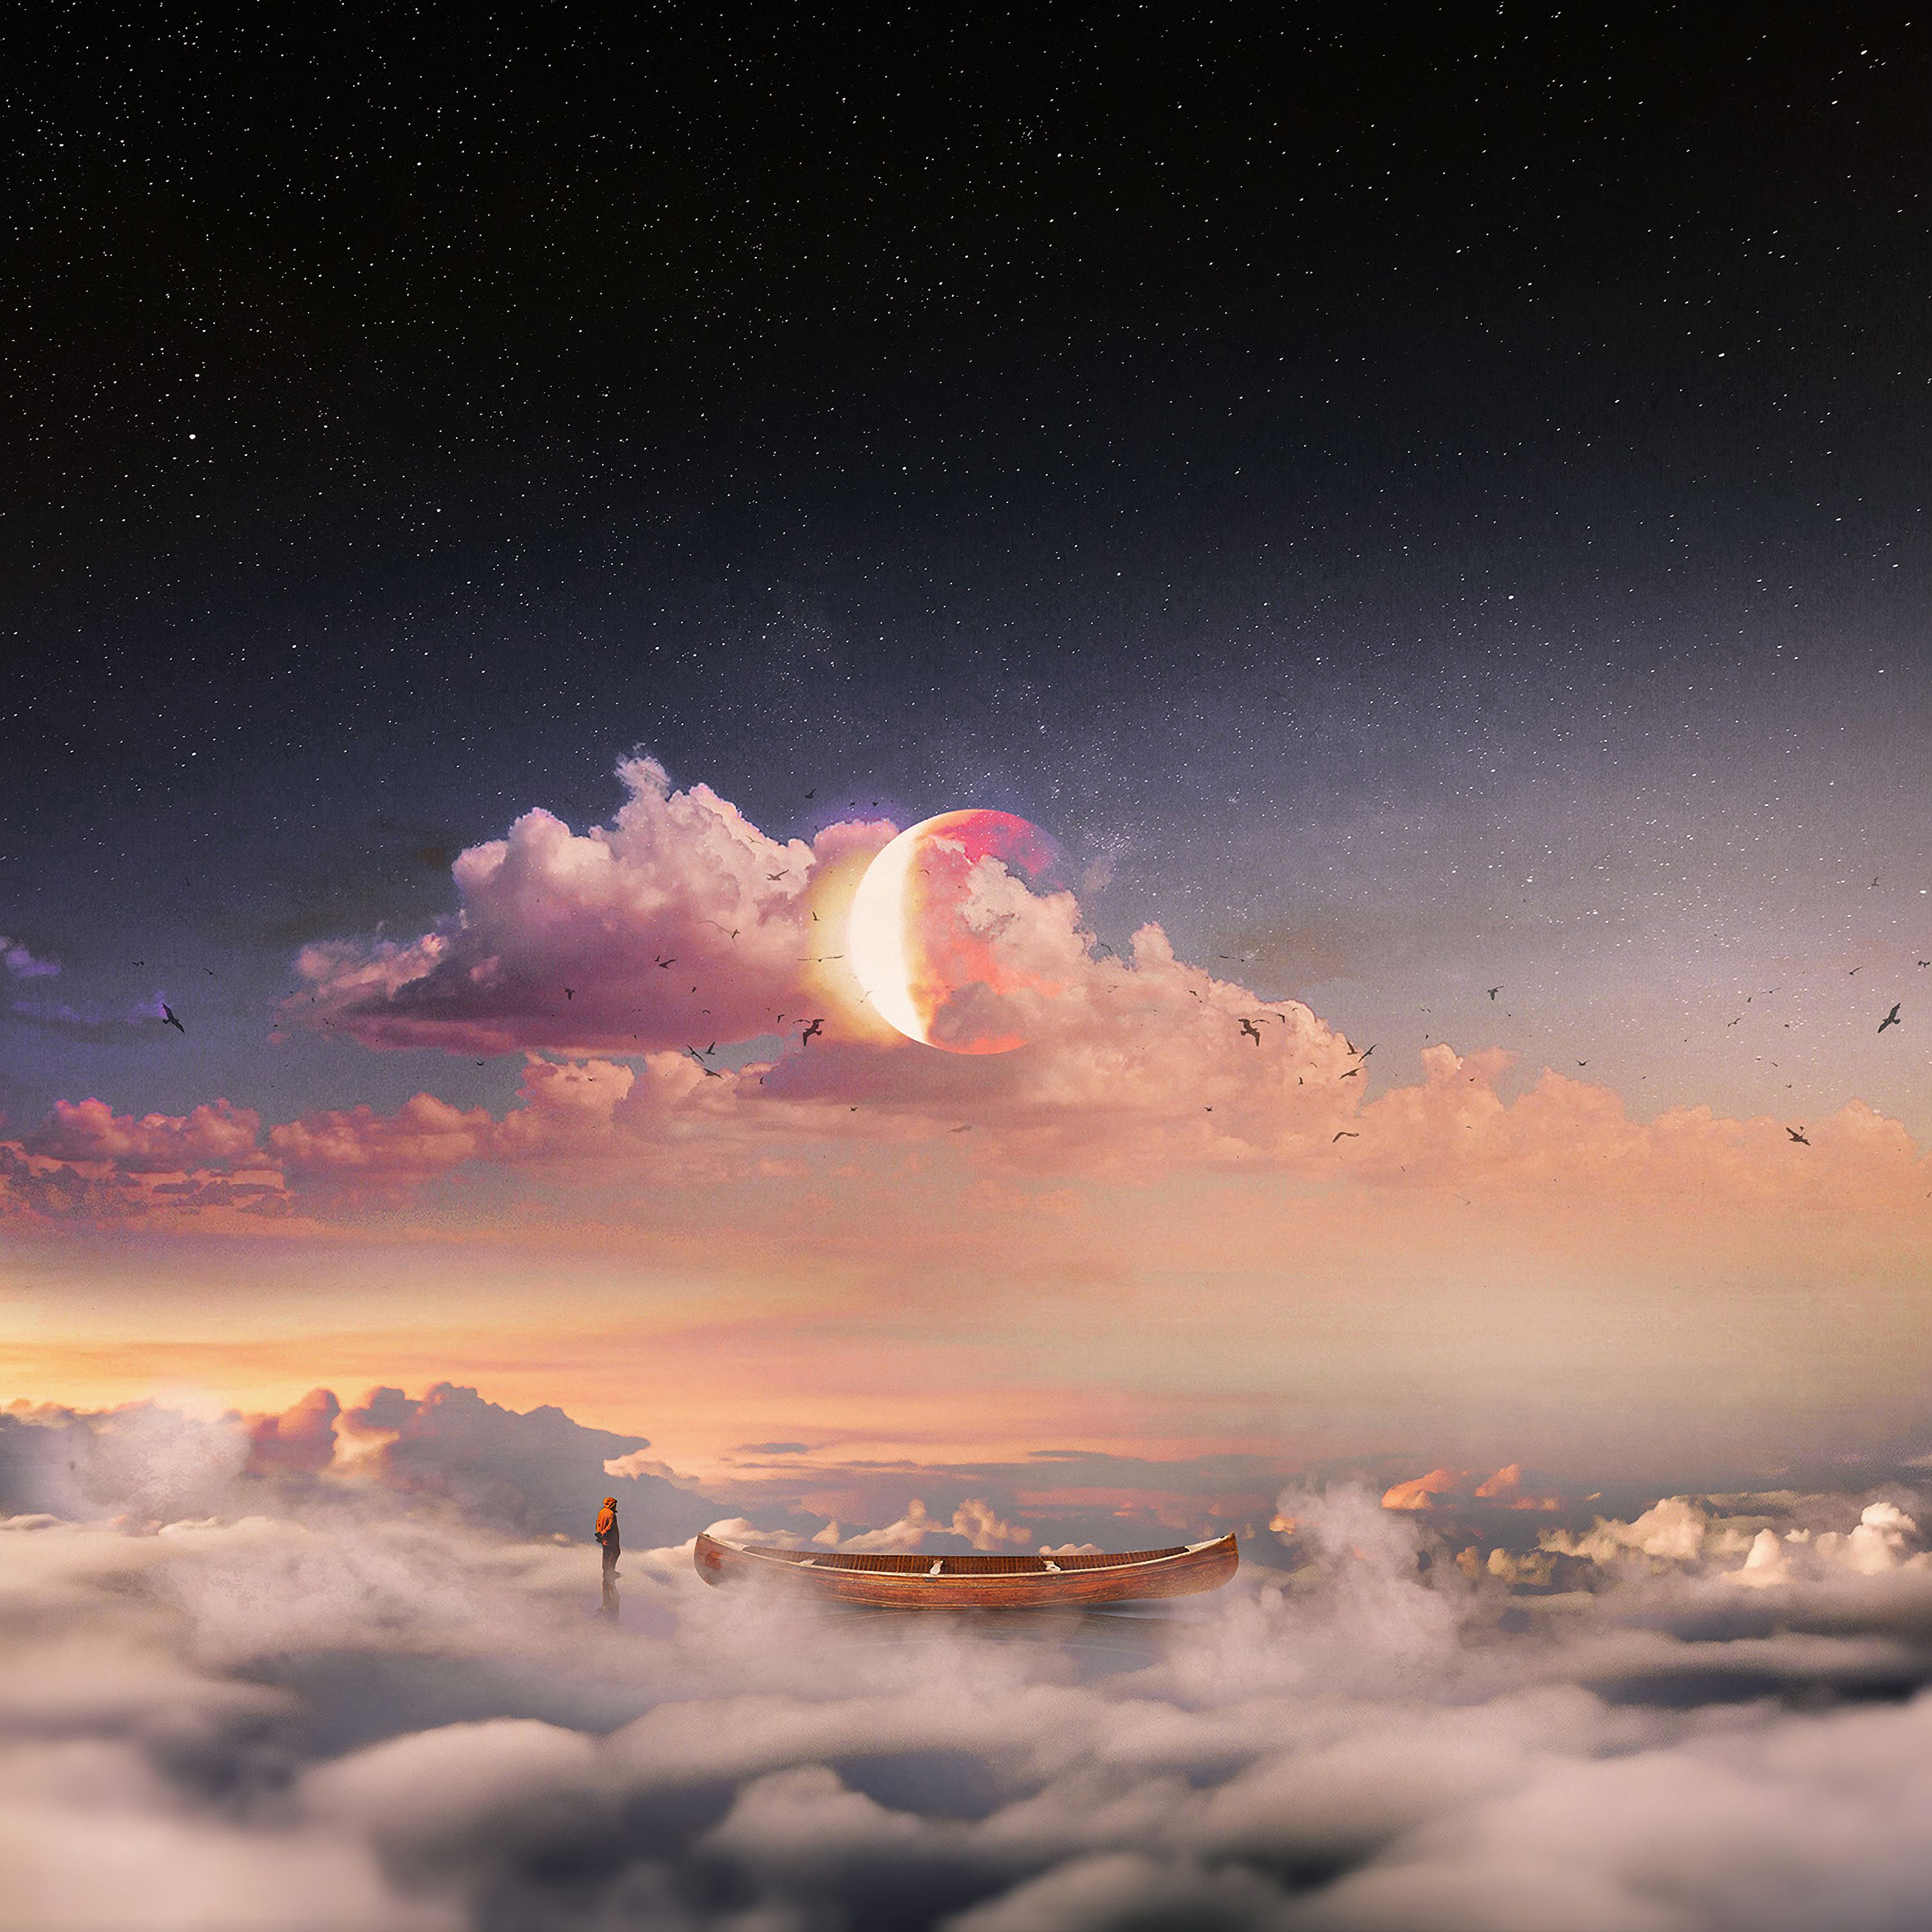 77352 download wallpaper Art, Surrealism, Boat, Clouds, Alone, Lonely, Human, Person, Starry Sky screensavers and pictures for free